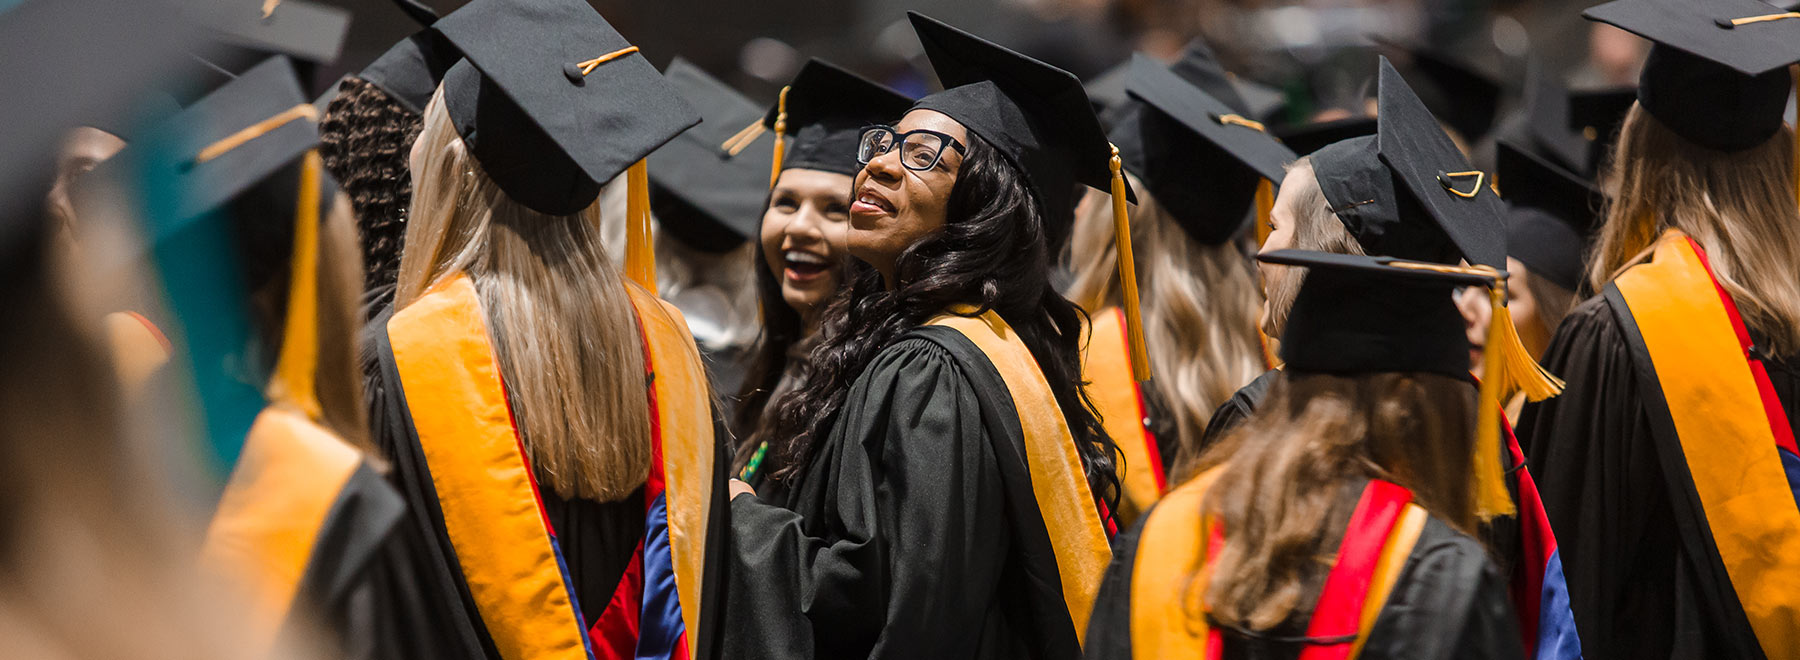 Woman in cap and gown during commencement.